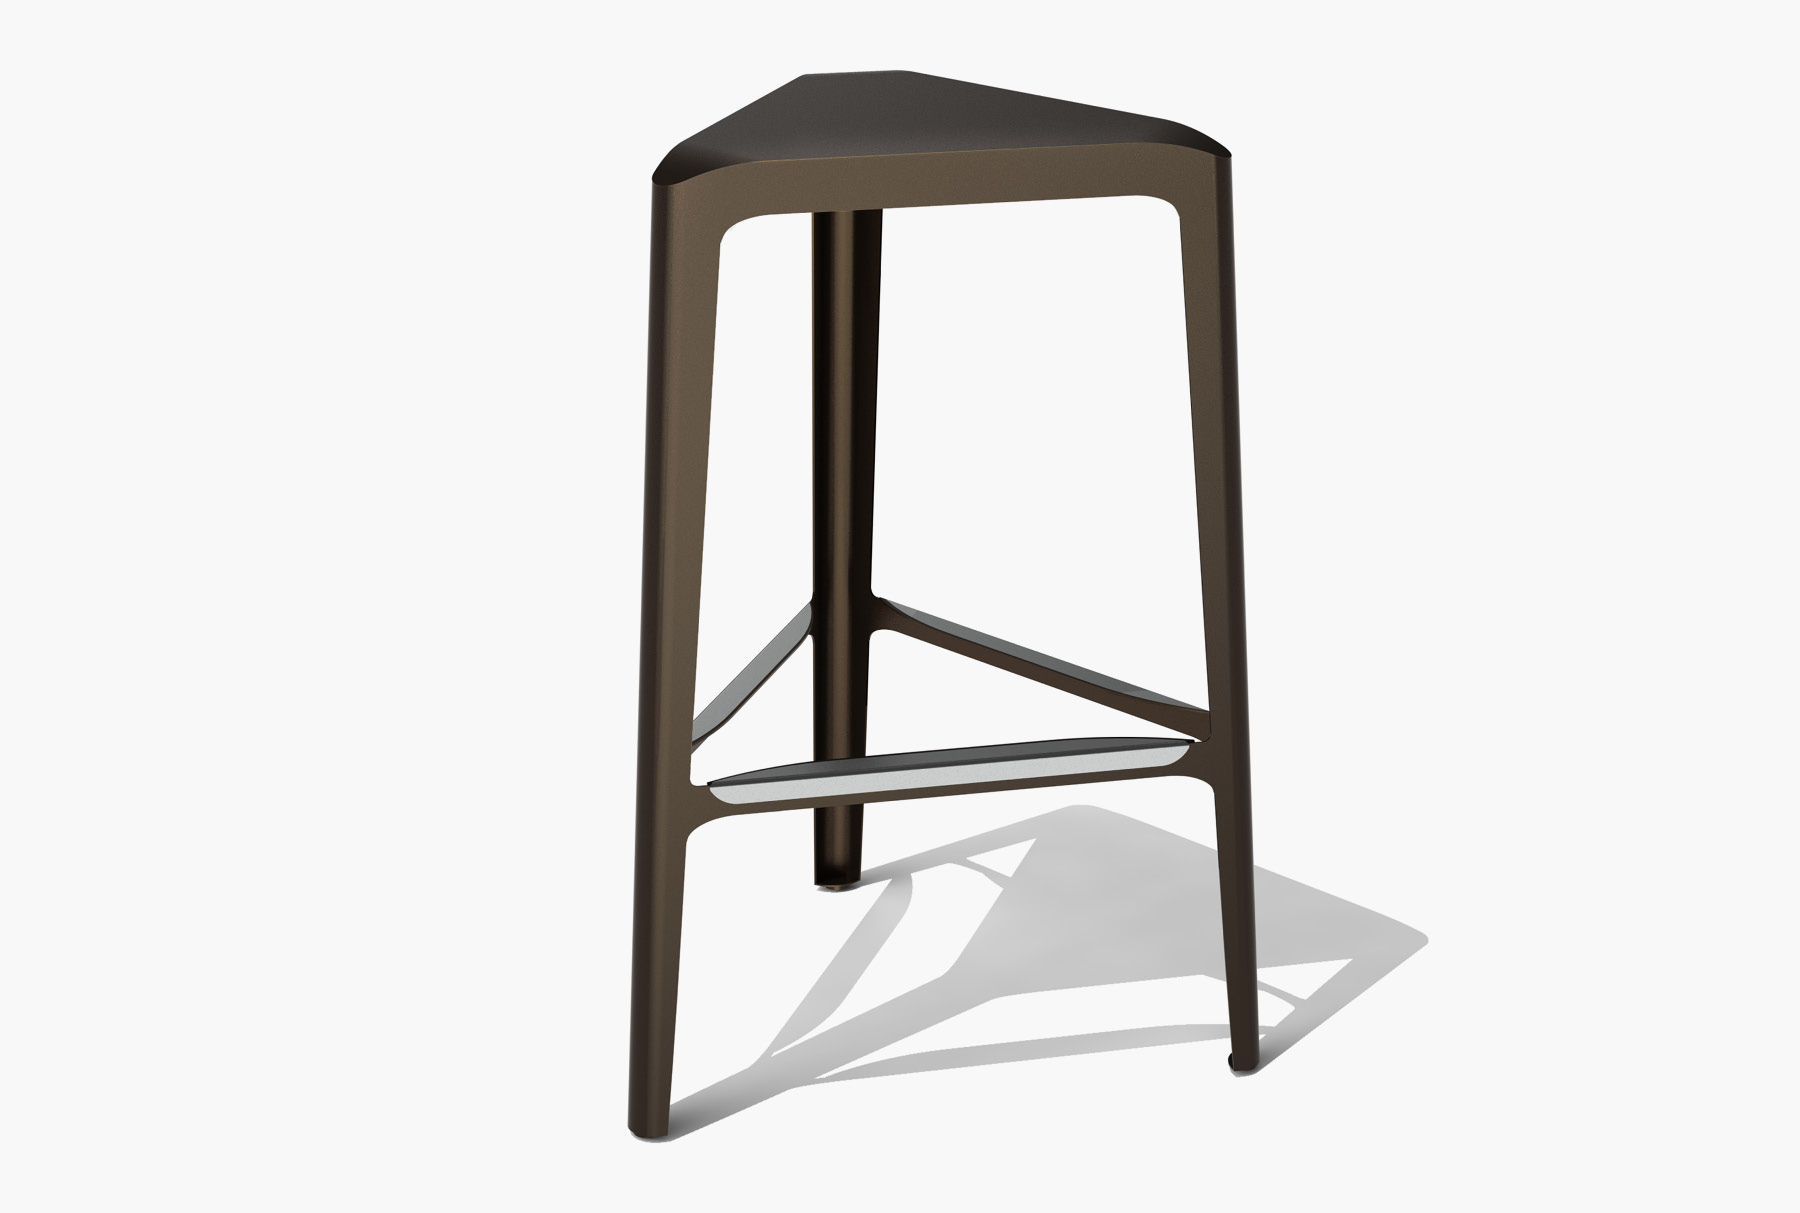 Arktura Clic Bar Stool in Burnished Bronze